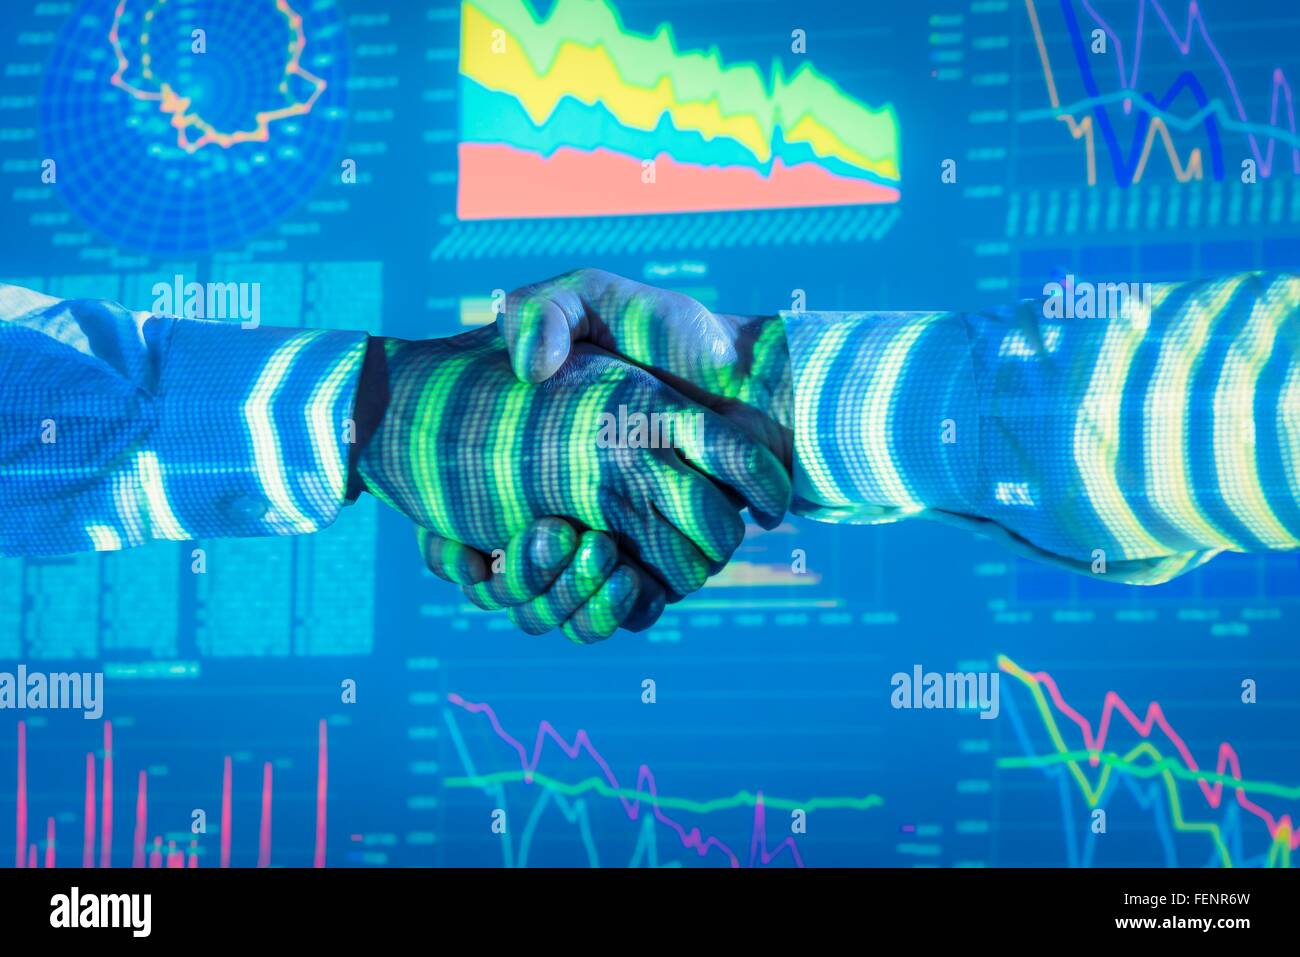 Businessmen shaking hands with projected graphical financial data, close up - Stock Image